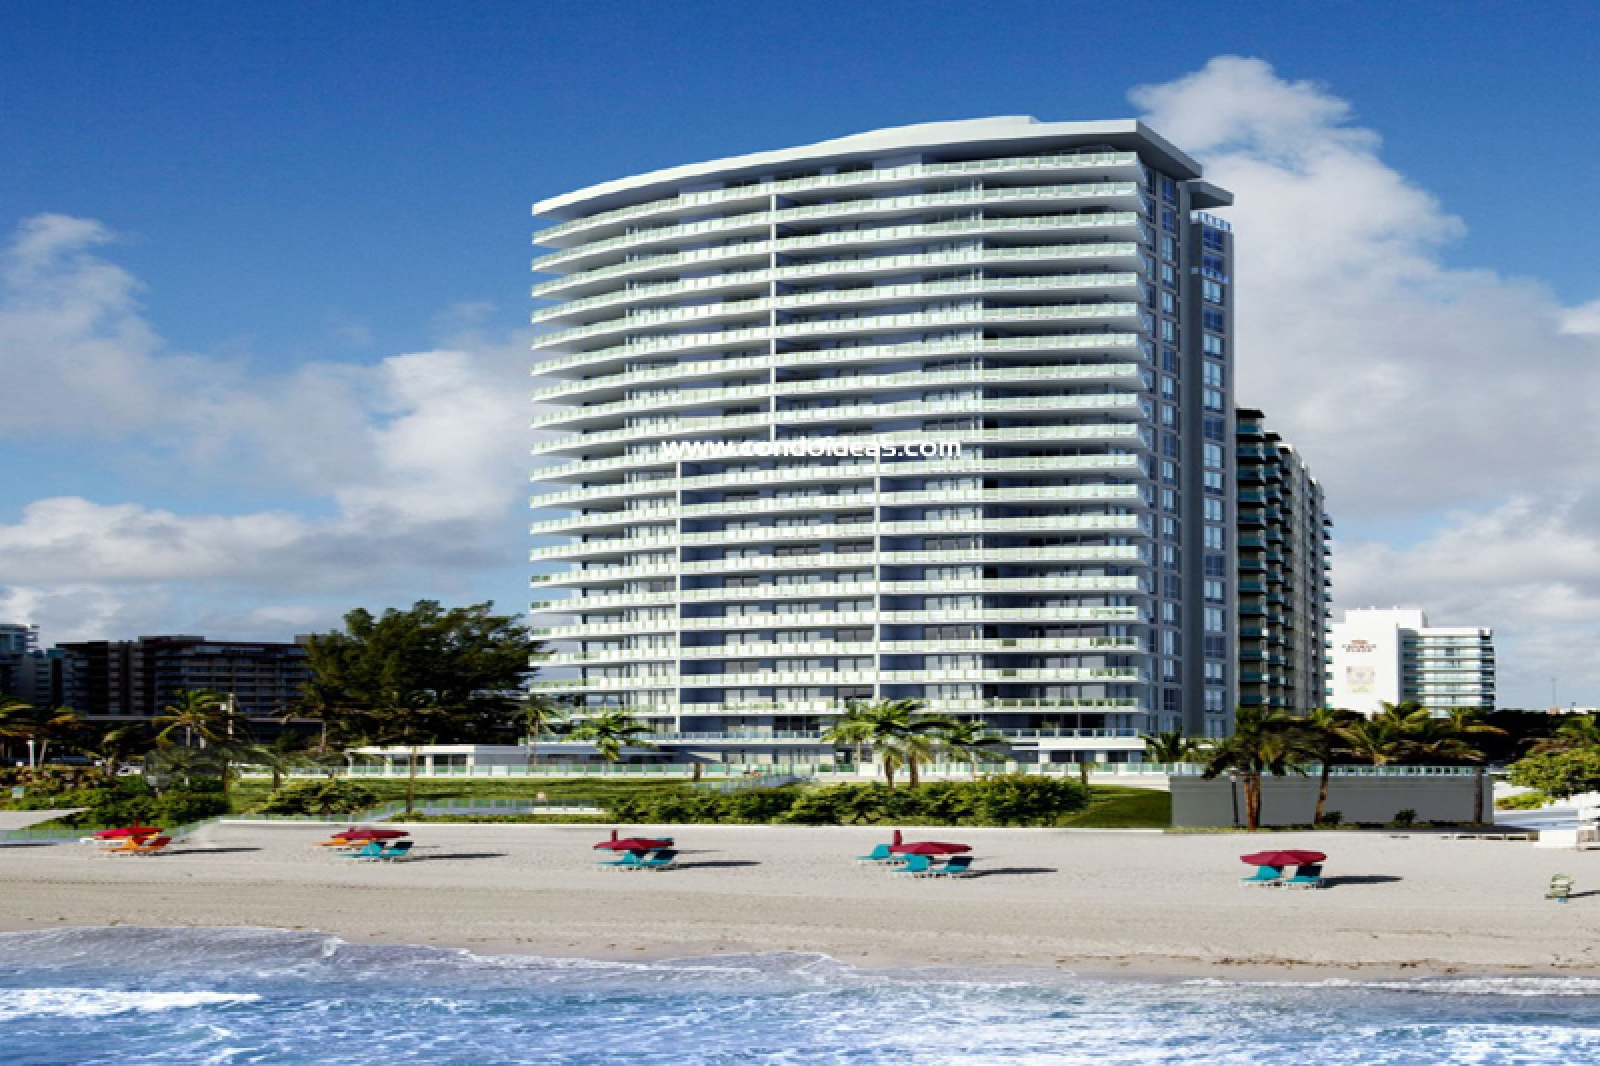 Apogee Beach Condo in Hollywood